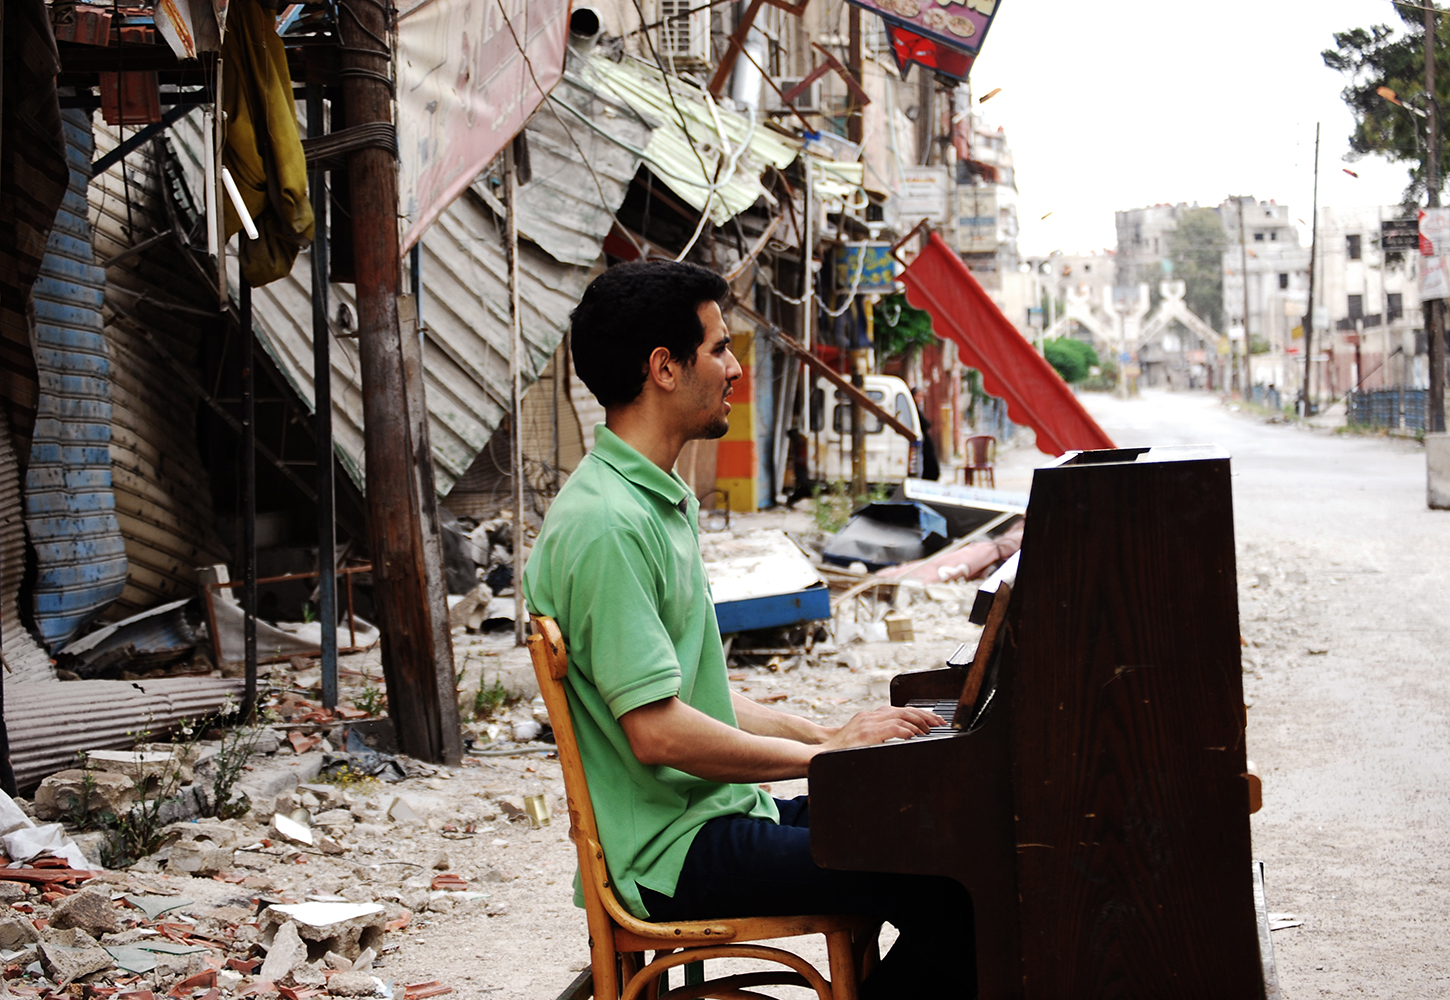 Aeham Ahmad sitting at a piano in a damaged street in Syria